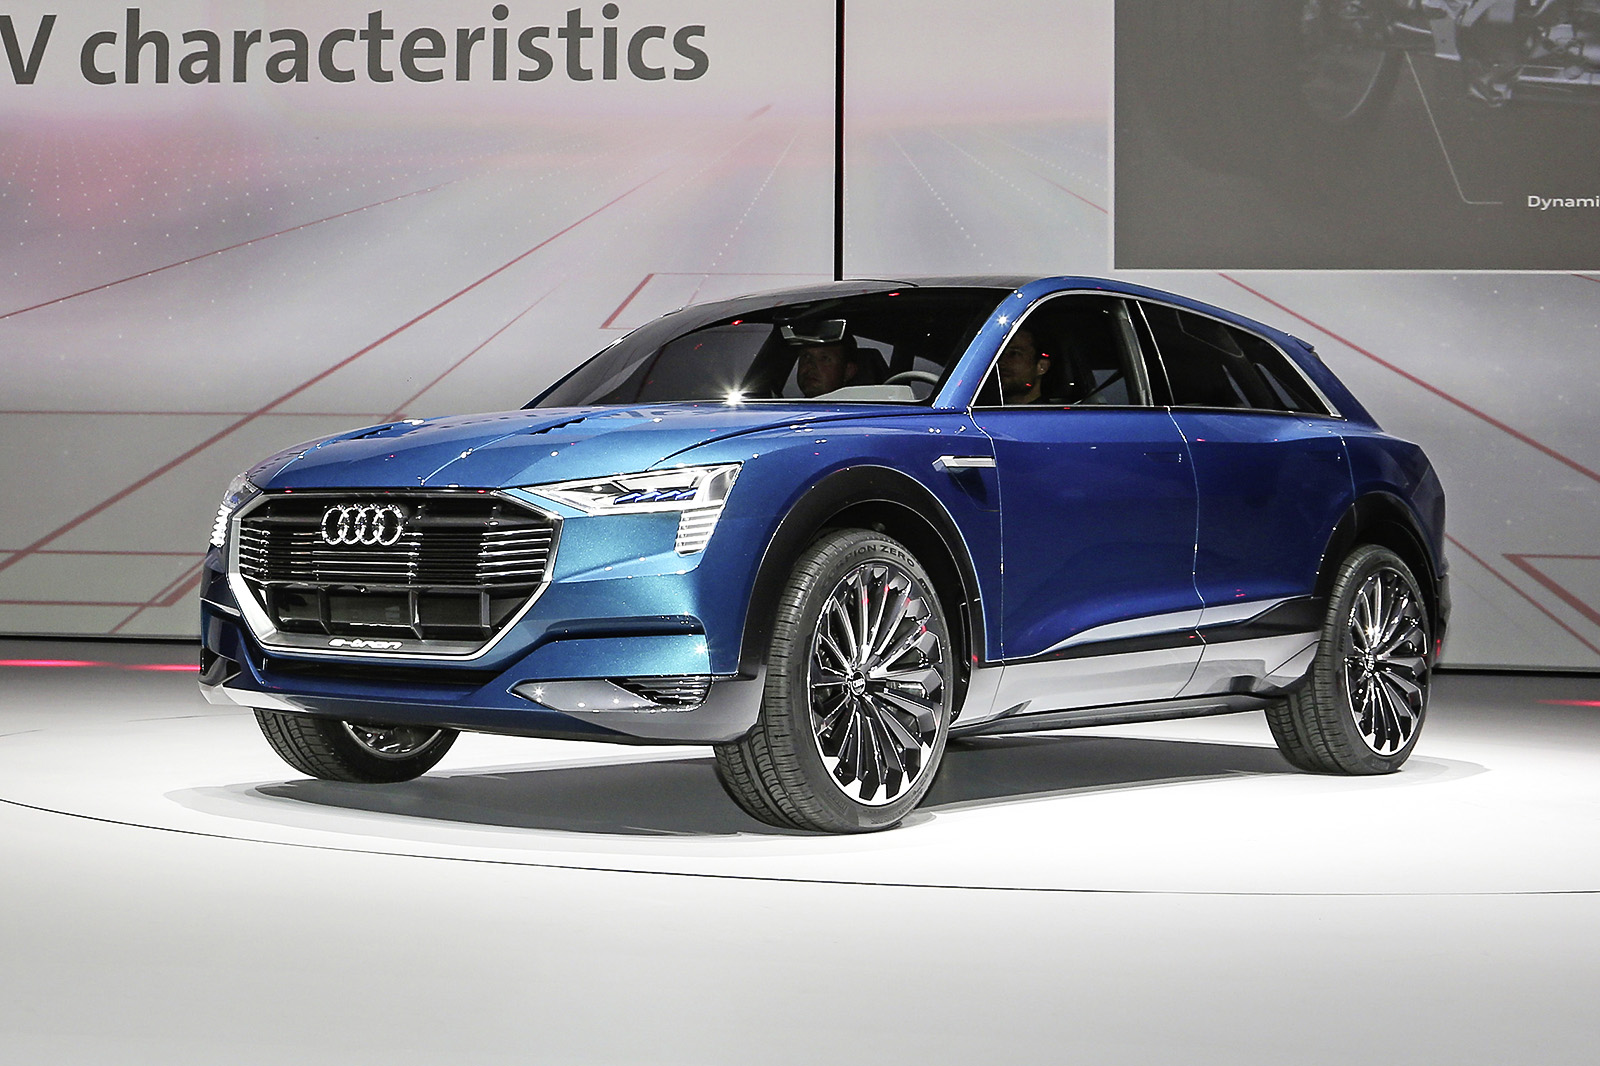 hight resolution of audi q6 e tron quattro confirmed for production